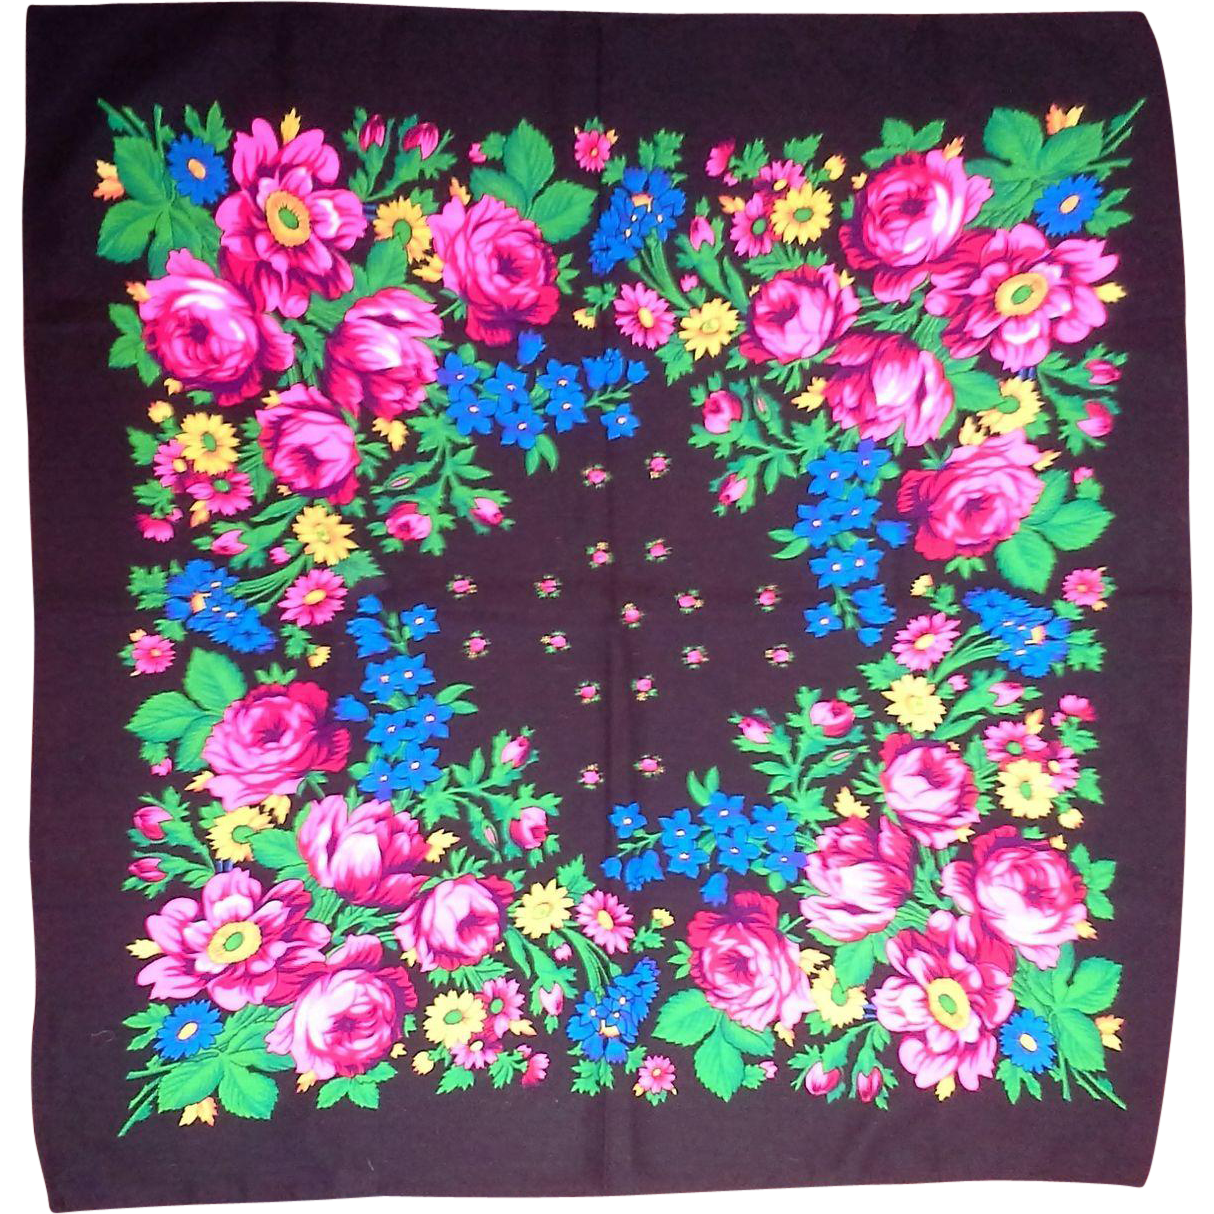 Glentex Black Bright Floral Scarf Made in Japan 27 IN